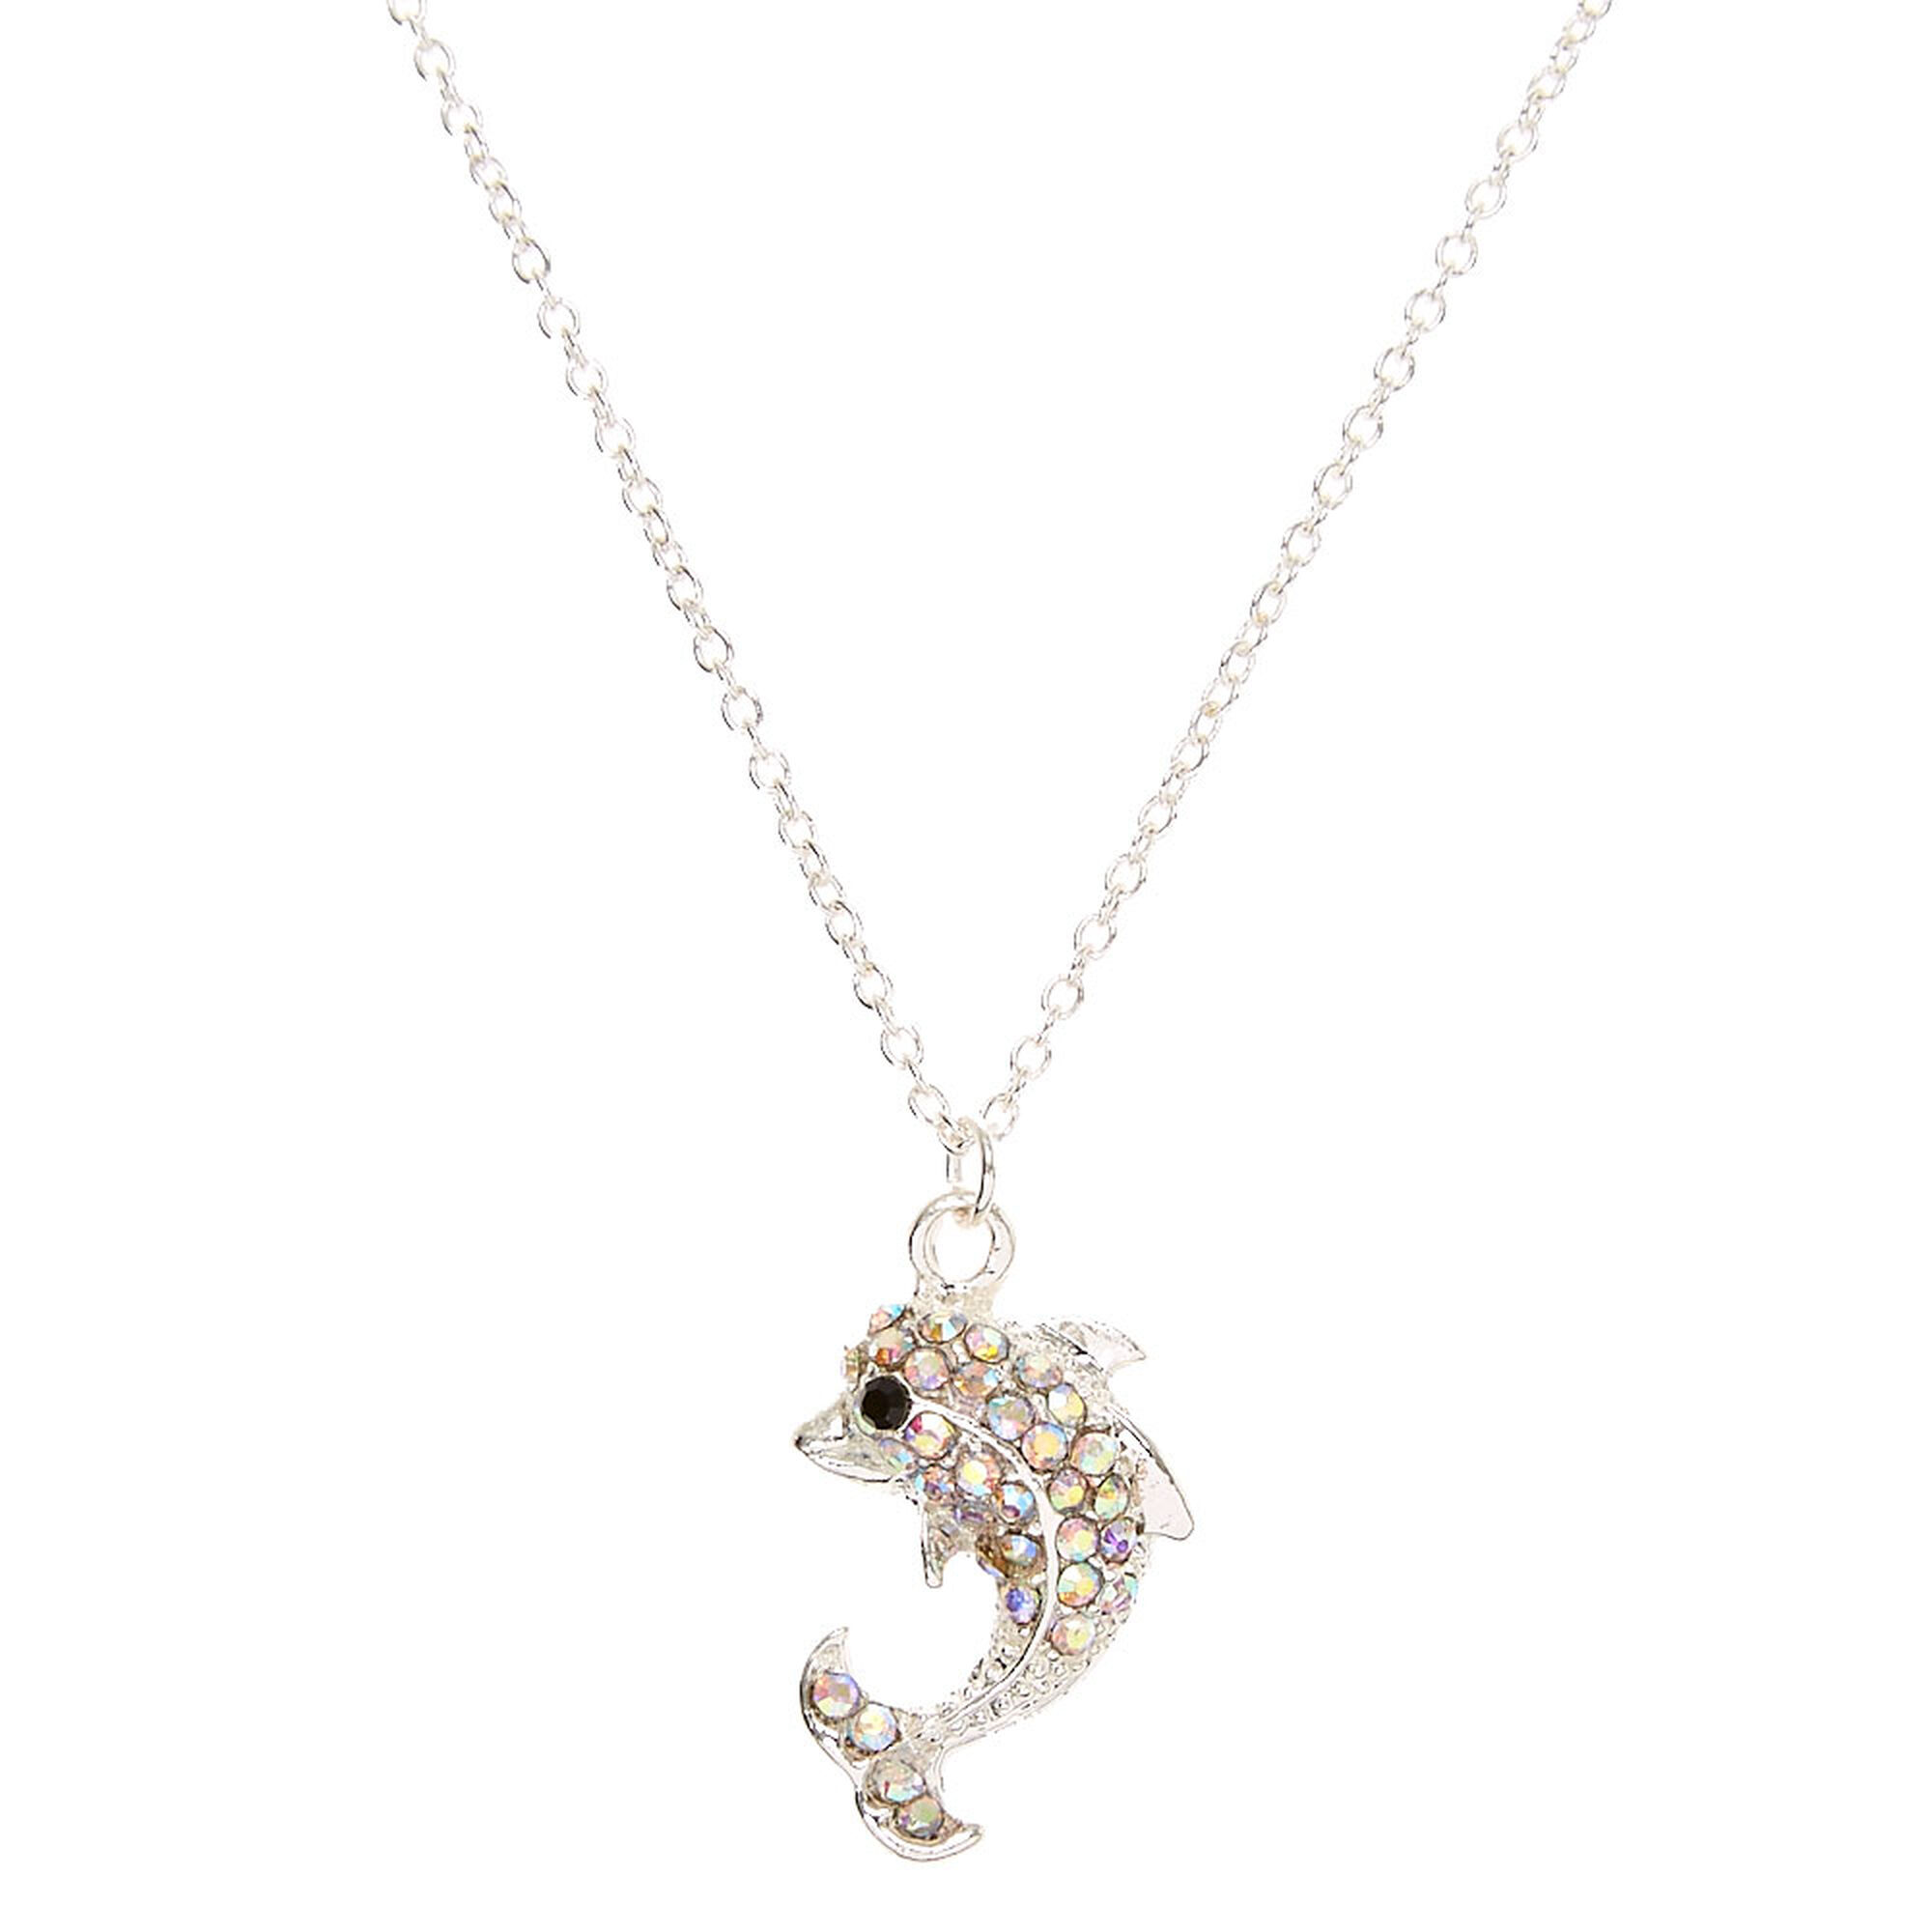 pendant necklace jumping crystal wikiwii dolphin products